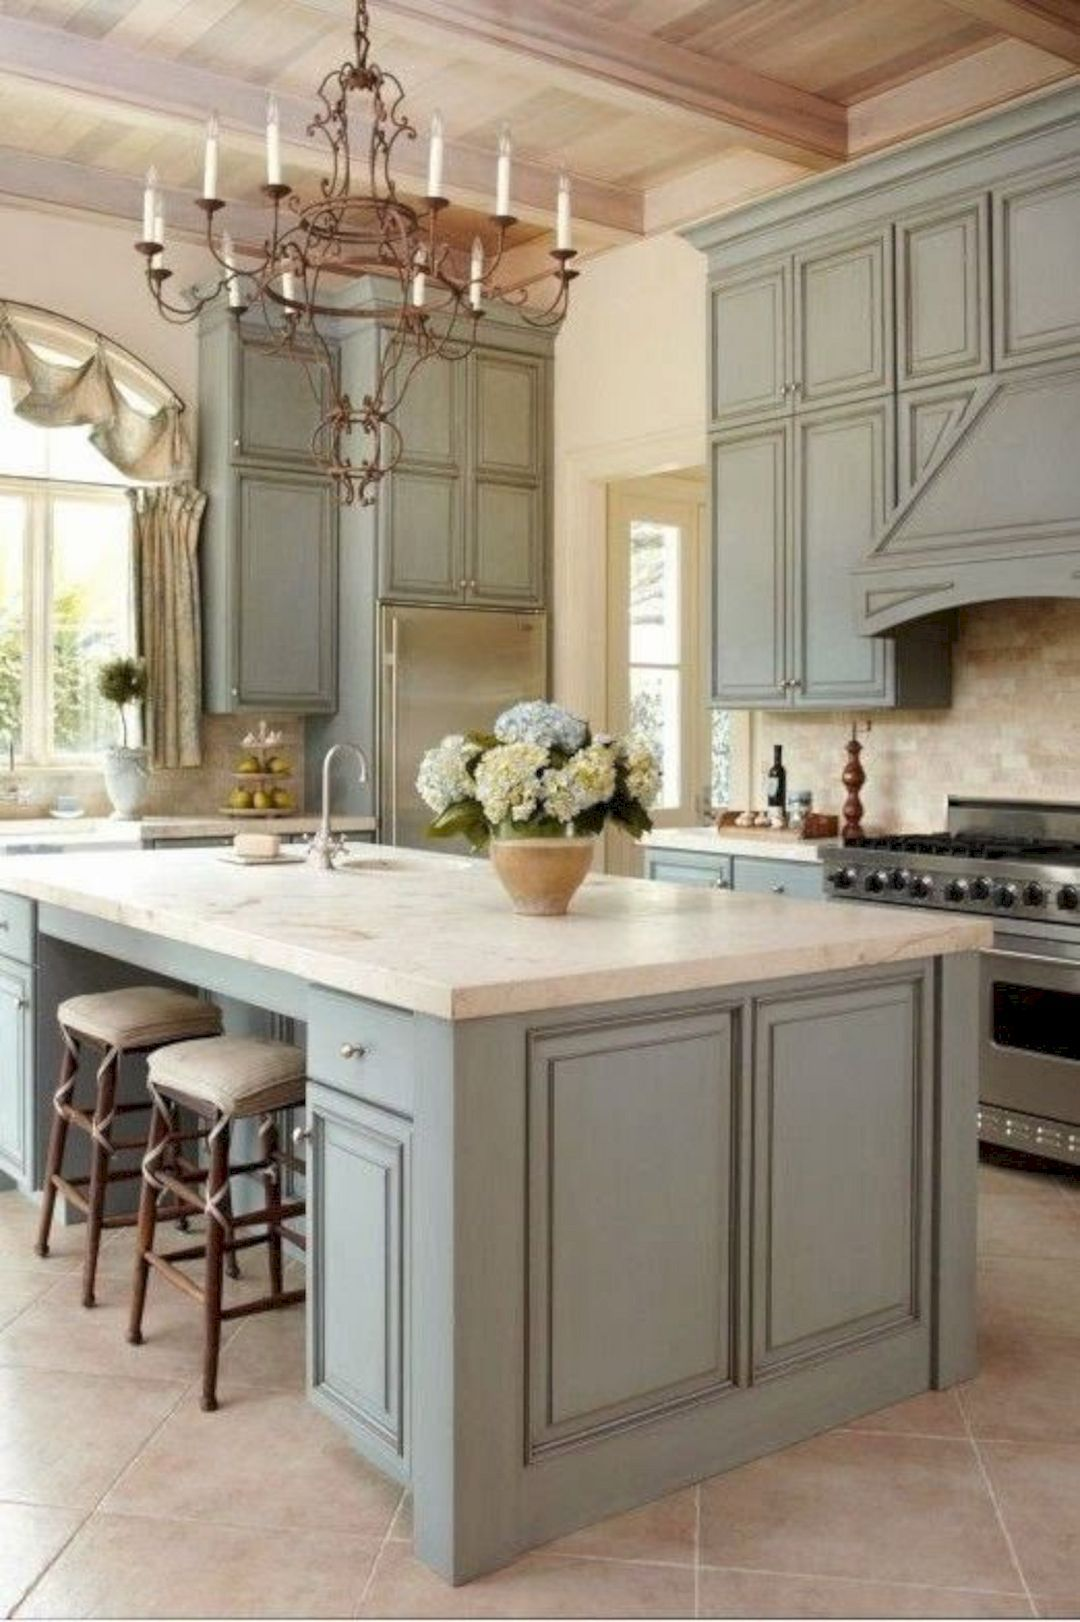 Beautiful Modern Wood Kitchen Cabinet Designs | Wood kitchen ... on countertops and flooring, blinds and flooring, granite and flooring, fireplaces and flooring, painting and flooring, carpet and flooring, kitchen with cherry floors, garage cabinets and flooring, kitchen renovations and flooring, wallpaper and flooring, kitchen floor cabinets, bathrooms and flooring, carpentry and flooring, kitchen flooring ideas, cherry cabinets and flooring, tile and flooring,